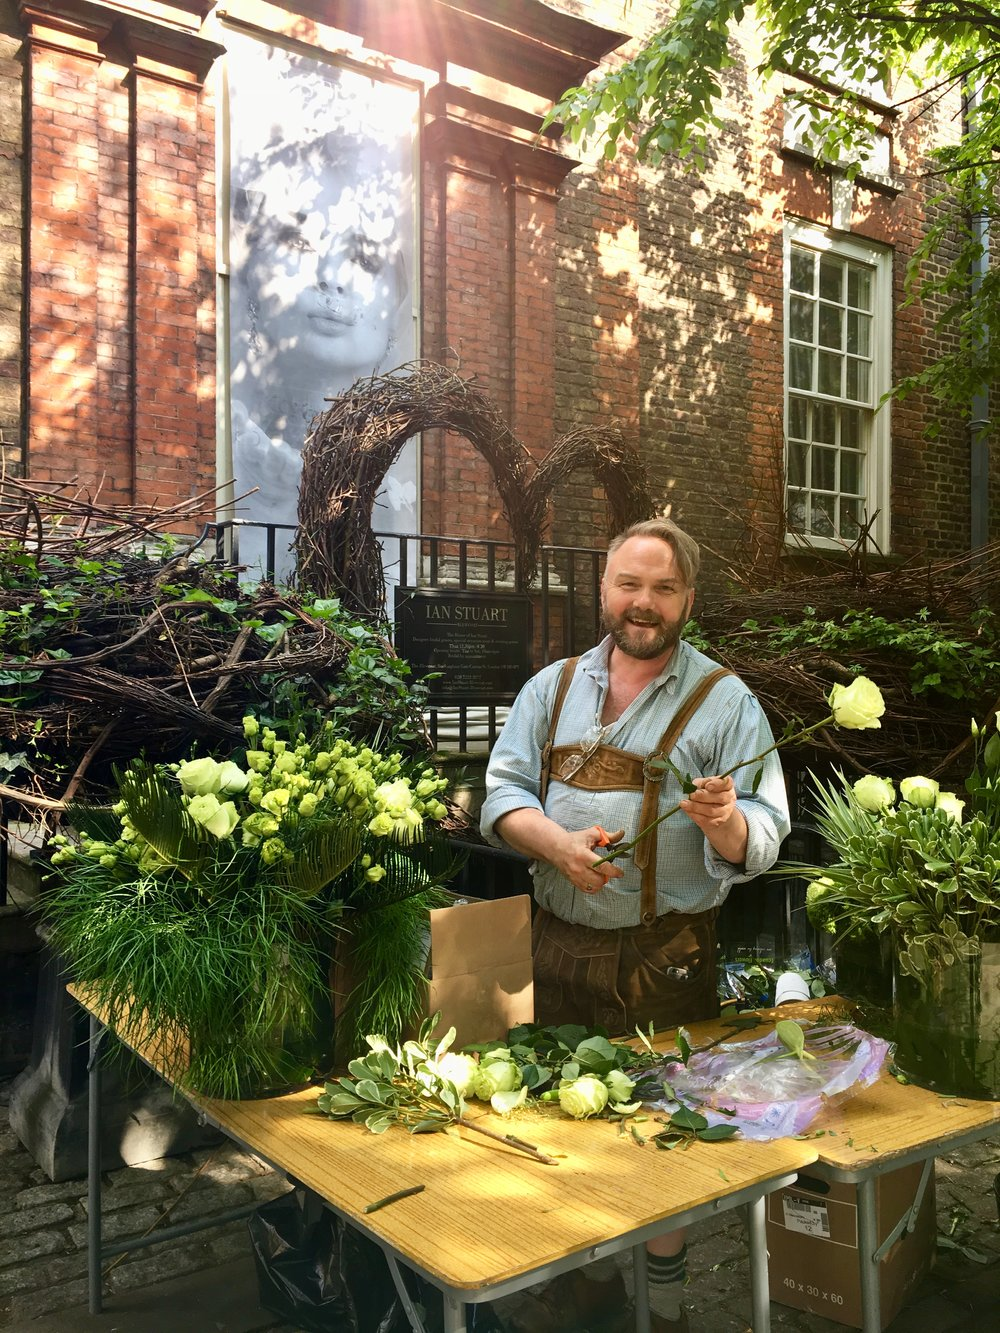 You can often spot Jens Jakobsen creating his playful floral displays outside the historic Blewcoat, which is now the flagship store wedding dress designer Ian Stuart.